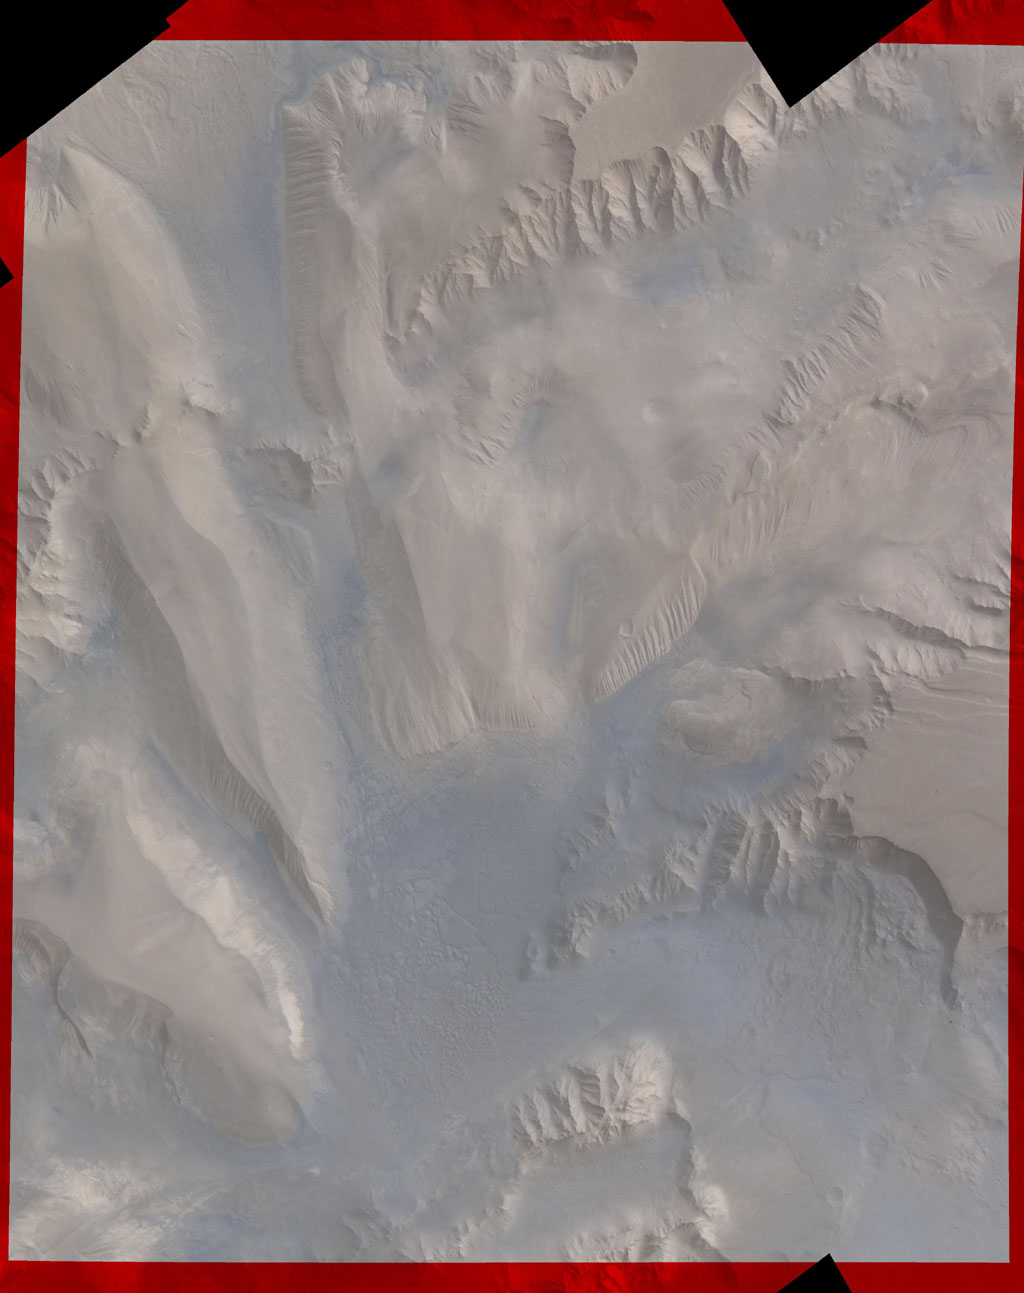 Part of Candor Chasm in Valles Marineris, Mars. Layered terrain is visible in the scene from NASA's Viking Orbiter 1., perhaps due to a huge ancient lake.